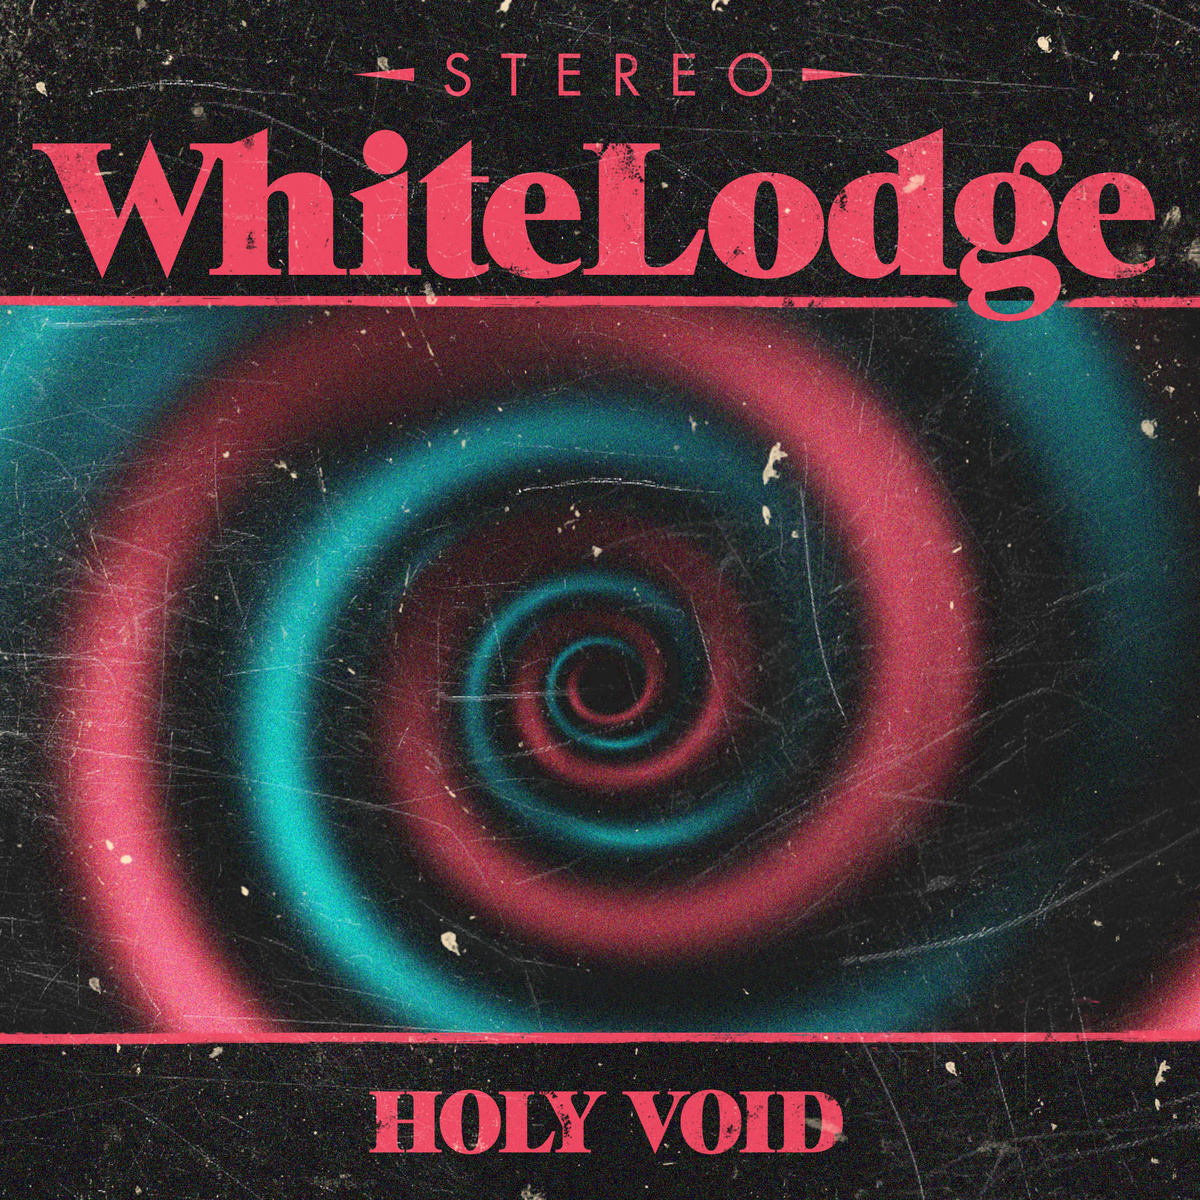 white lodge